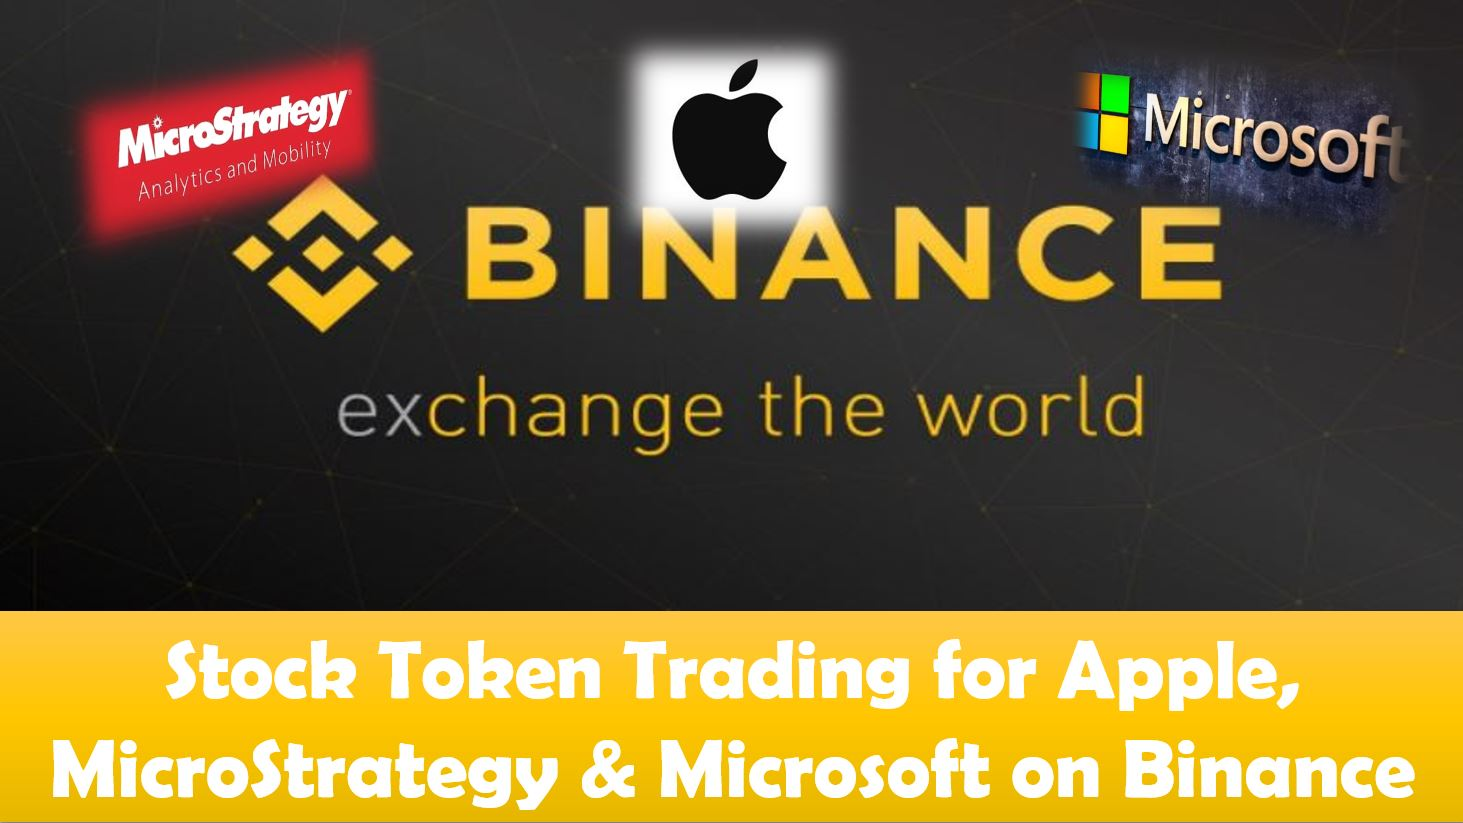 Stock Token Trading for Apple, MicroStrategy & Microsoft on Binance